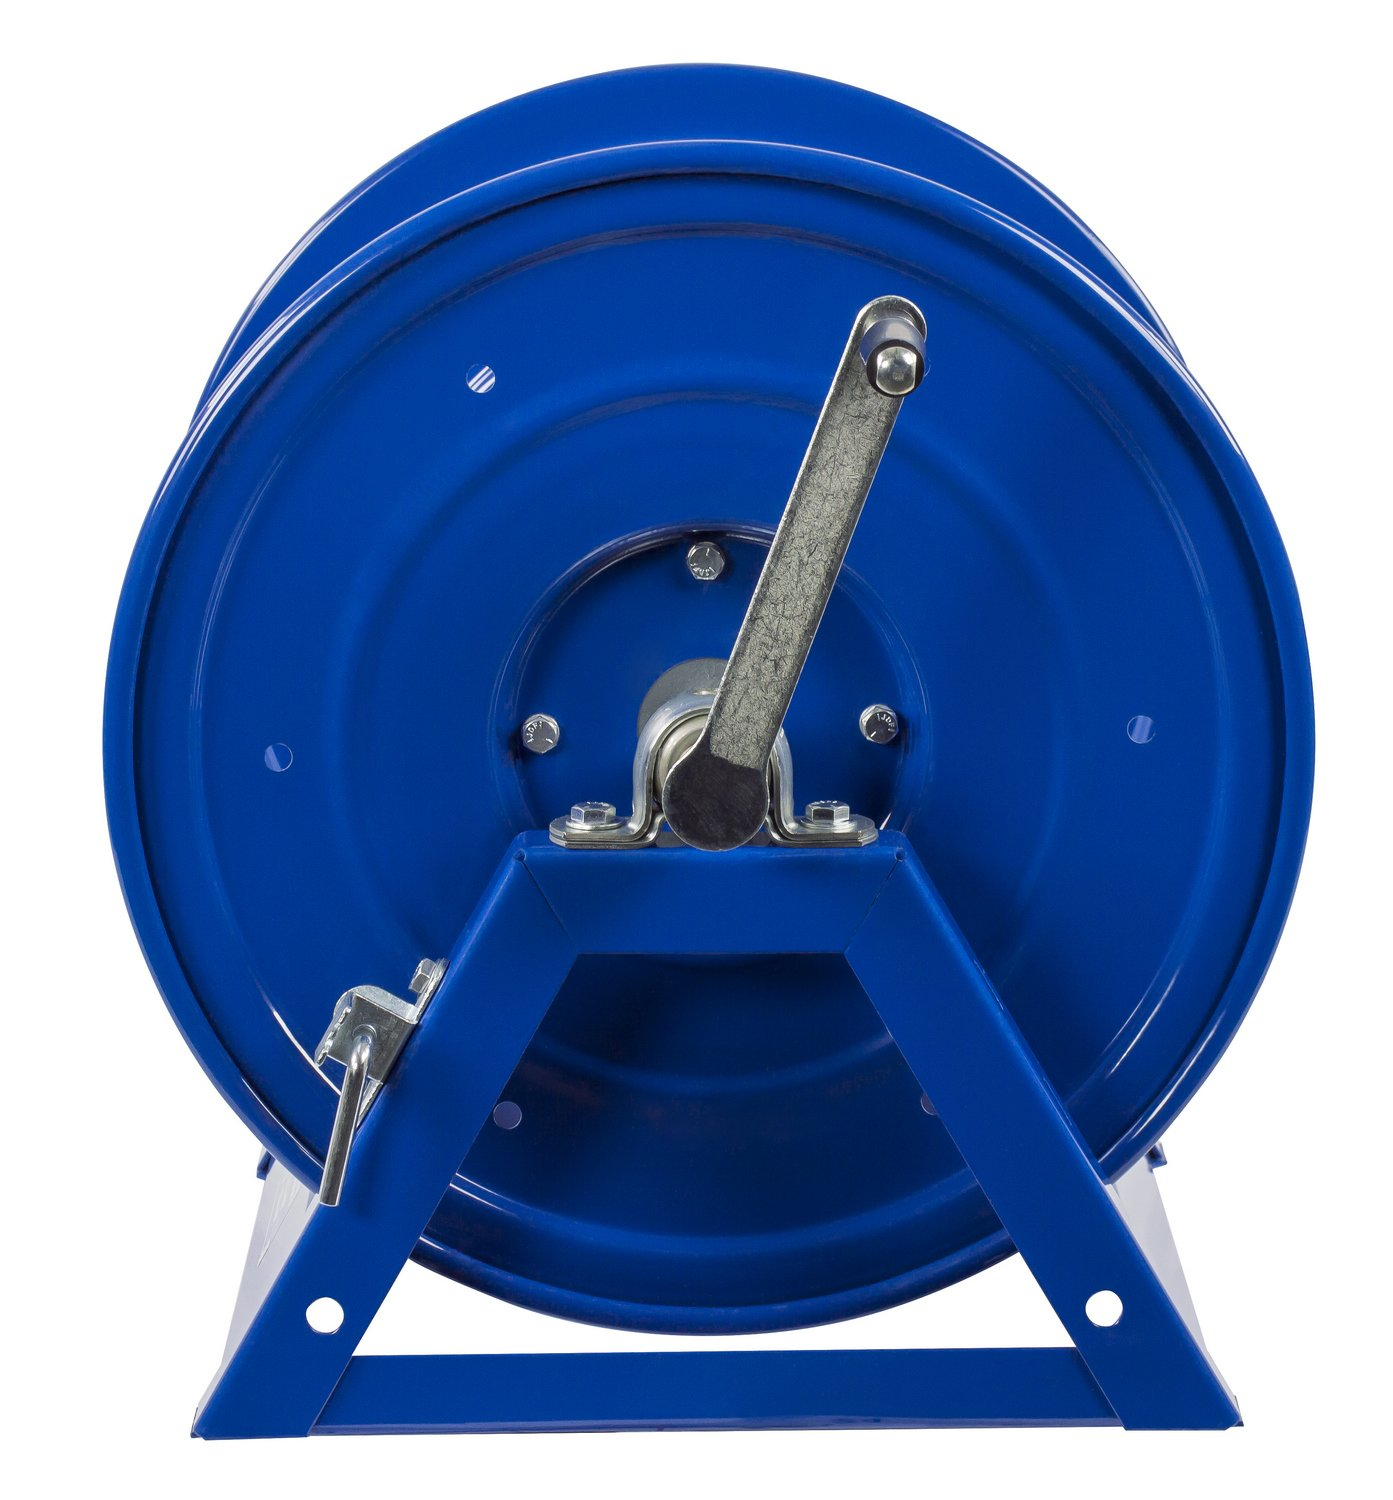 Coxreels 1125-4-100 Steel Hand Crank Hose Reel, 1/2'' Hose I.D., 100' Hose Capacity, 3,000 PSI, without Hose, Made in USA by Coxreels (Image #8)